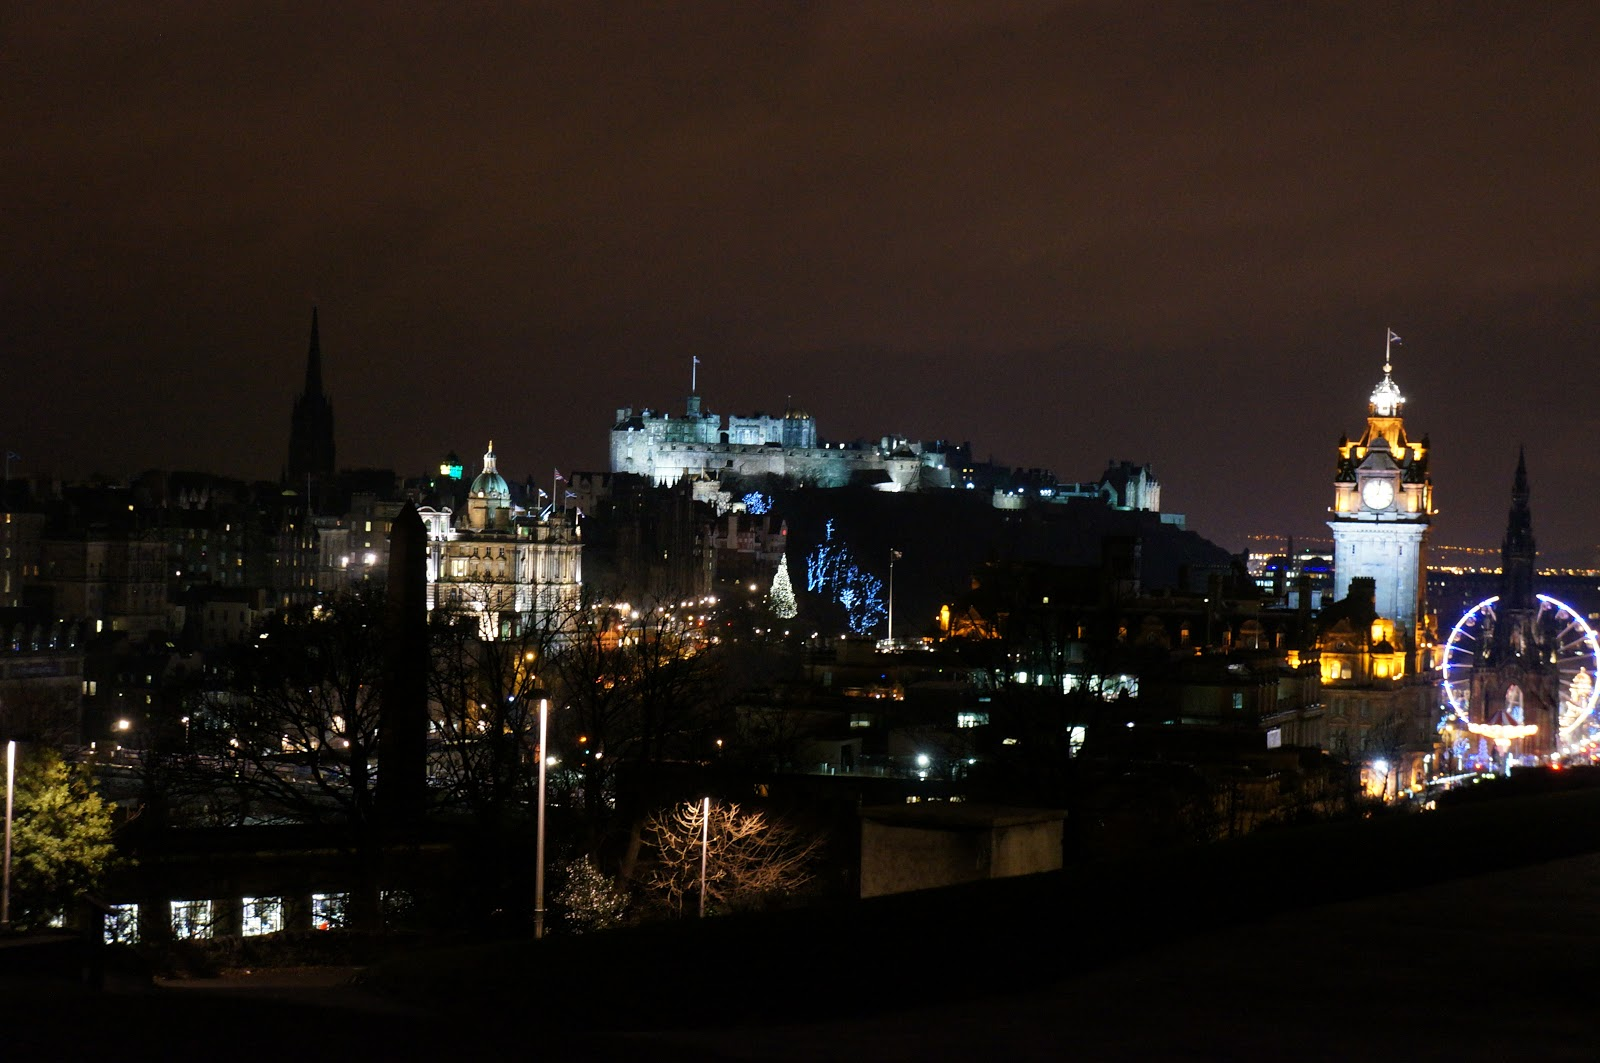 Nightlife in edinburgh scotland